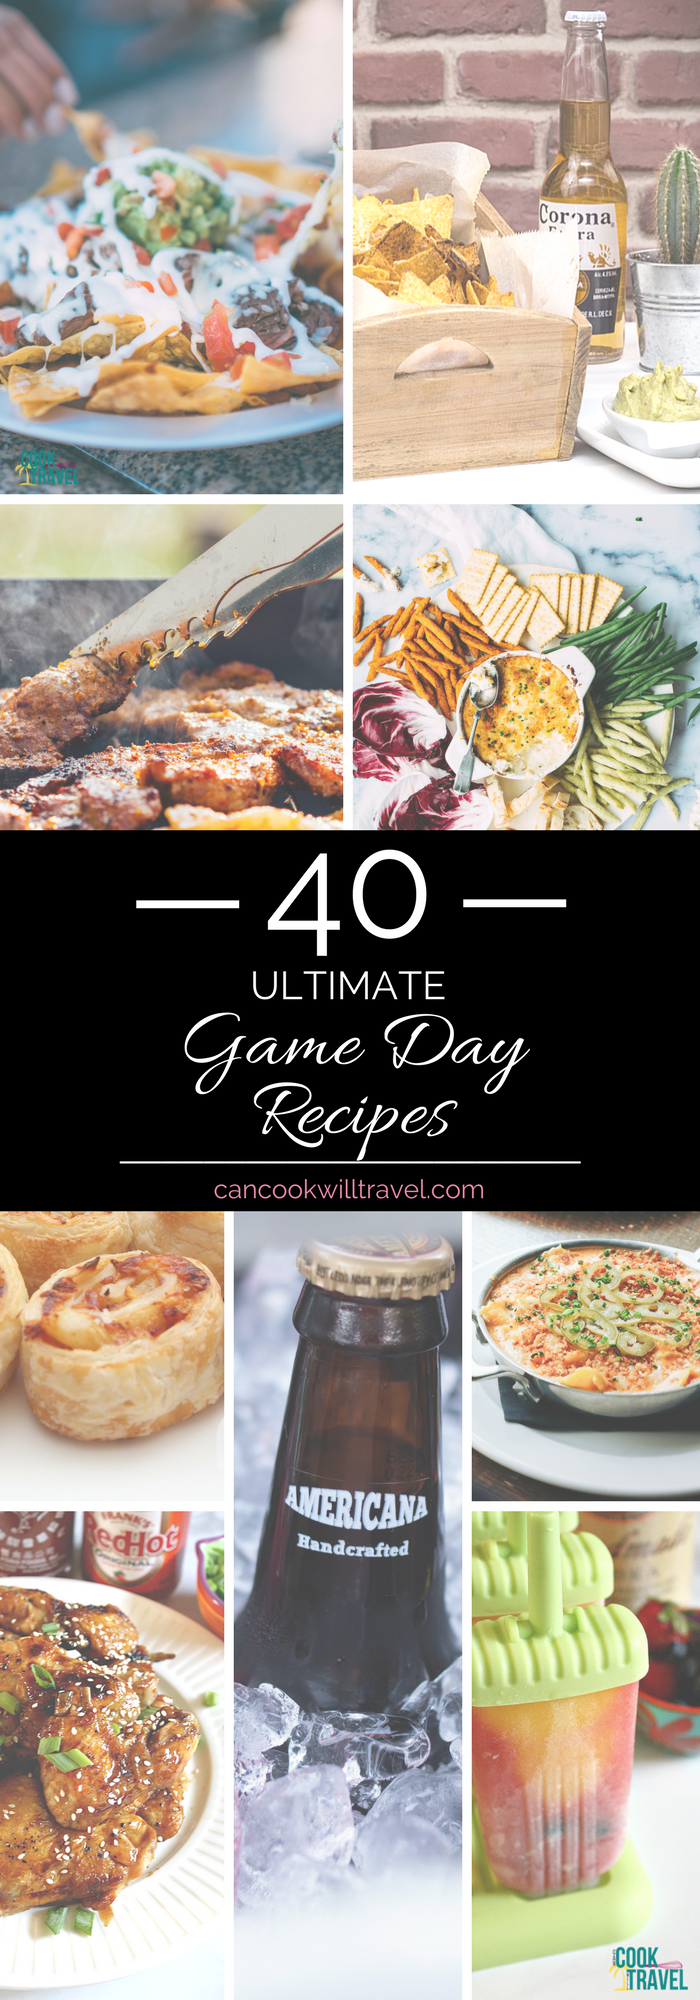 Ultimate Game Day Recipes